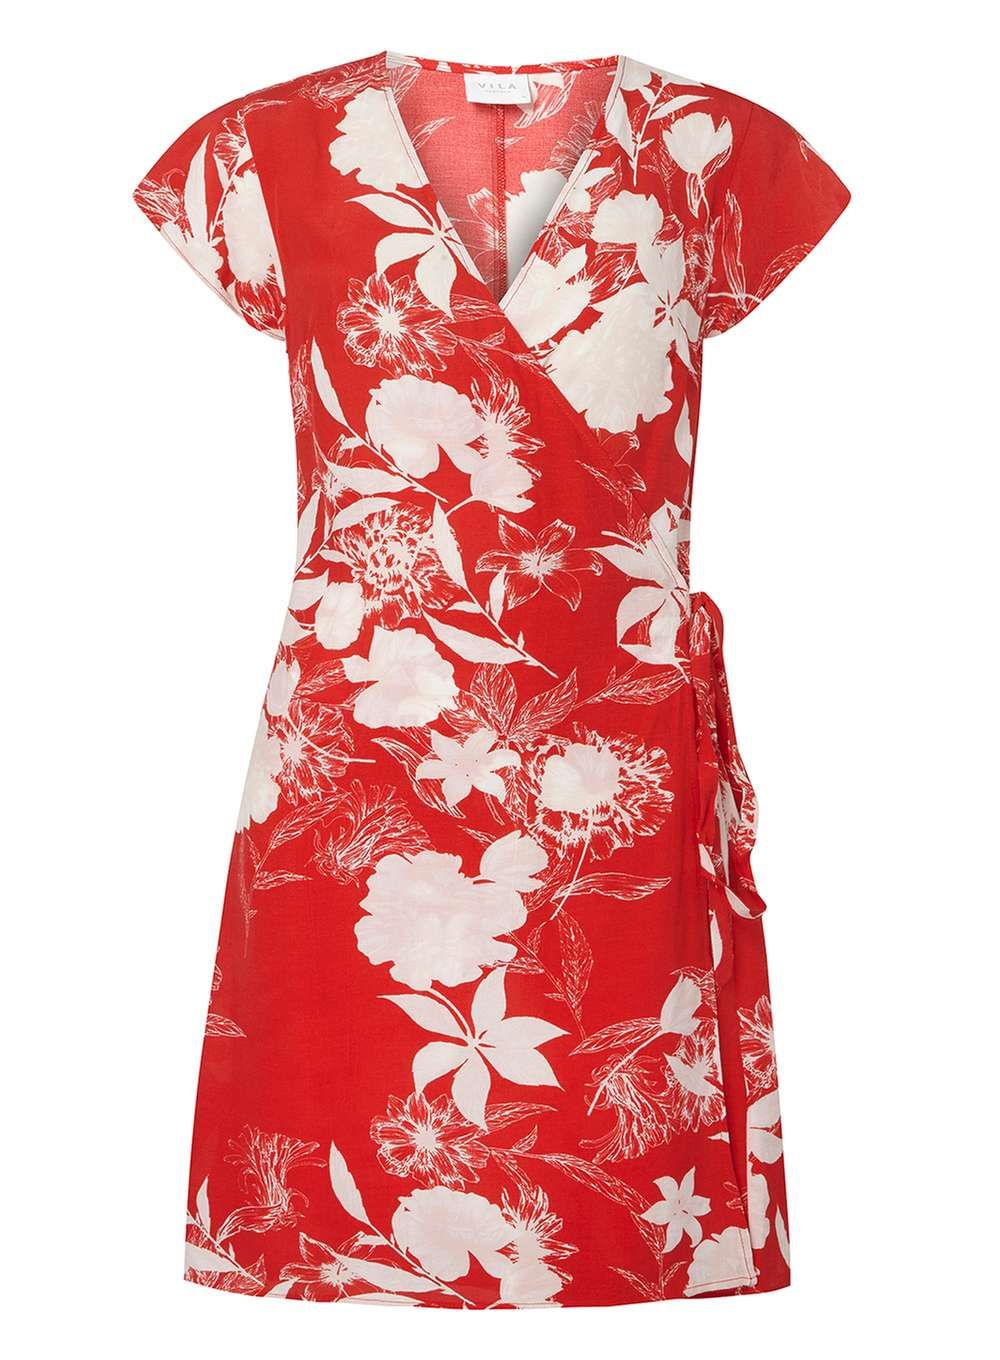 Womens Red Floral Print Wrap Dress Dorothy Perkins uIcbAvQOA